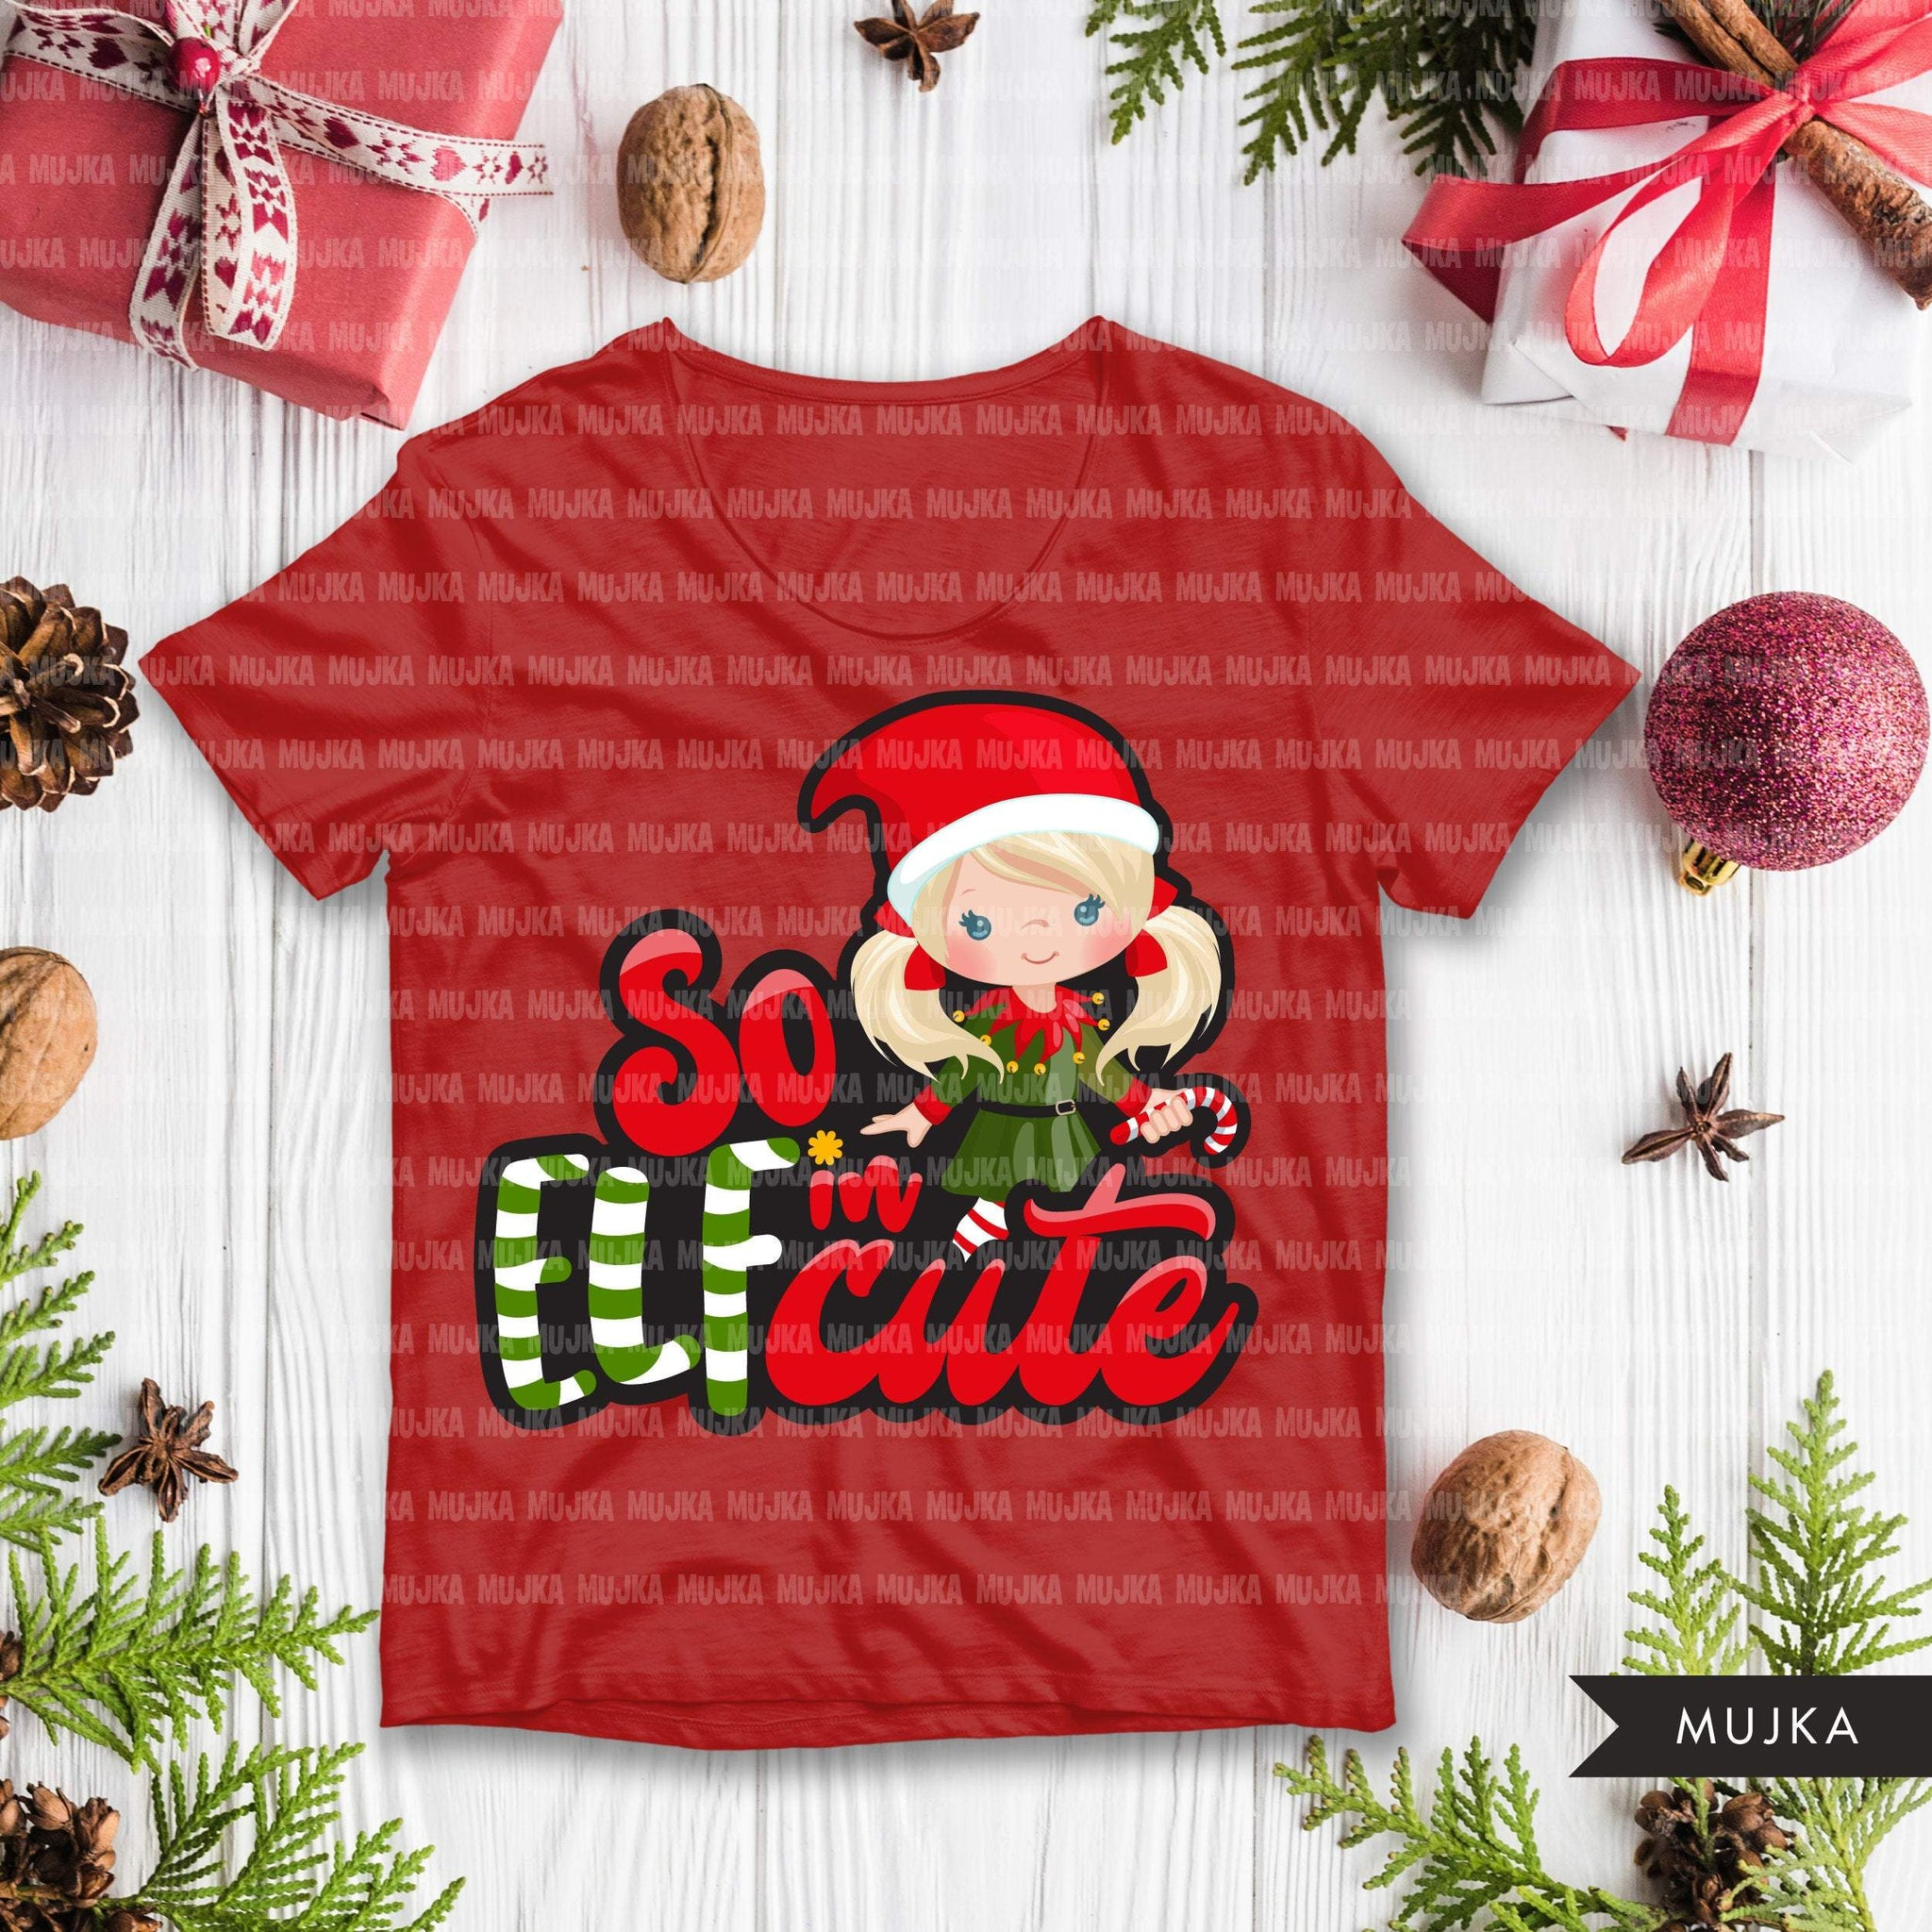 Christmas SVG PNG digital, So Elfin Cute HTV sublimation image transfer clipart, t-shirt graphics, Elf little girl